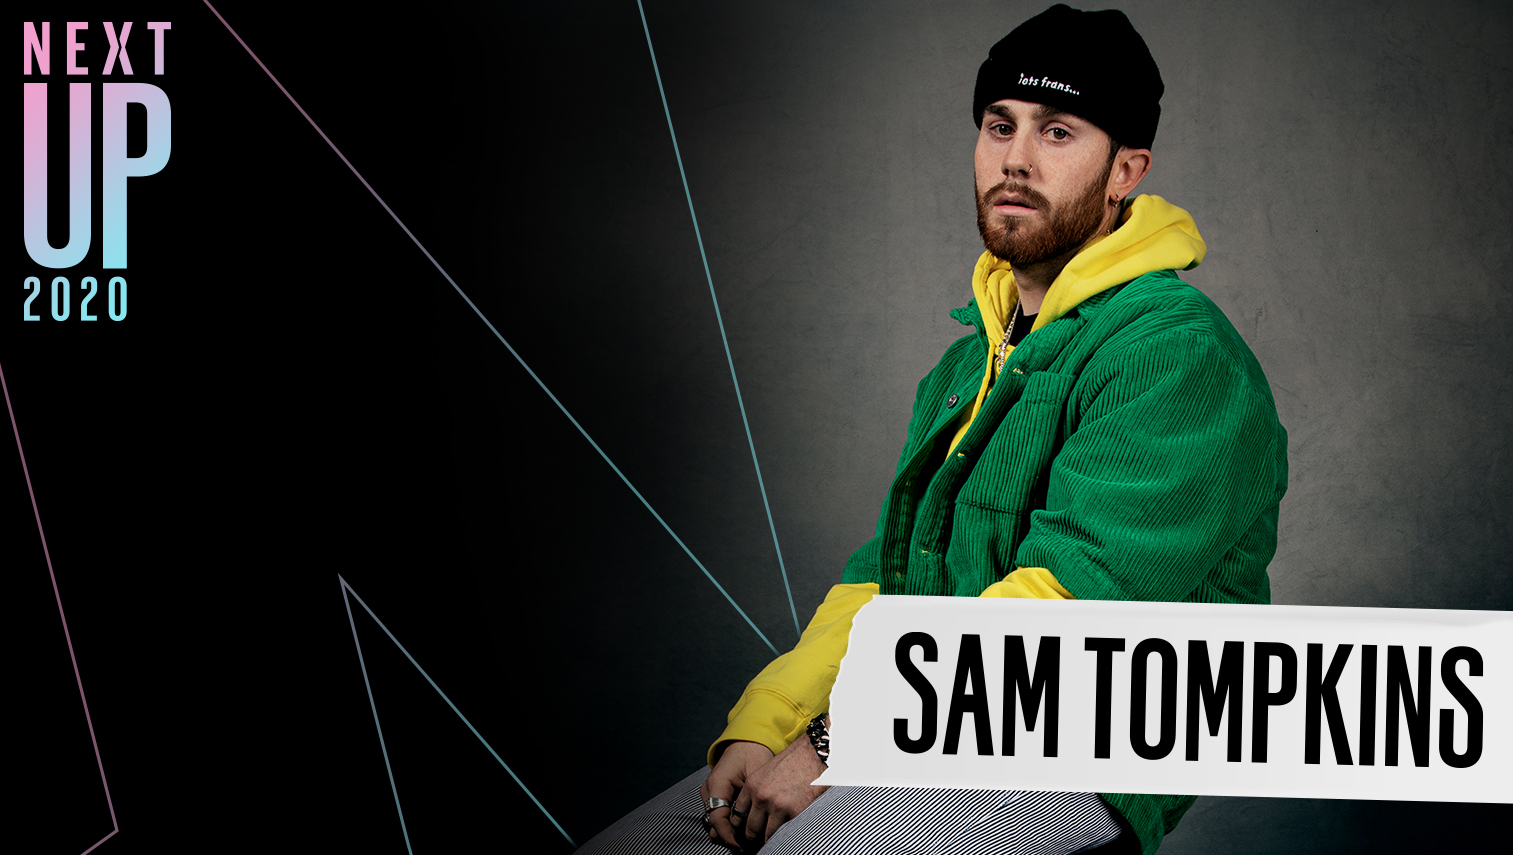 Next Up 2020: Sam Tompkins